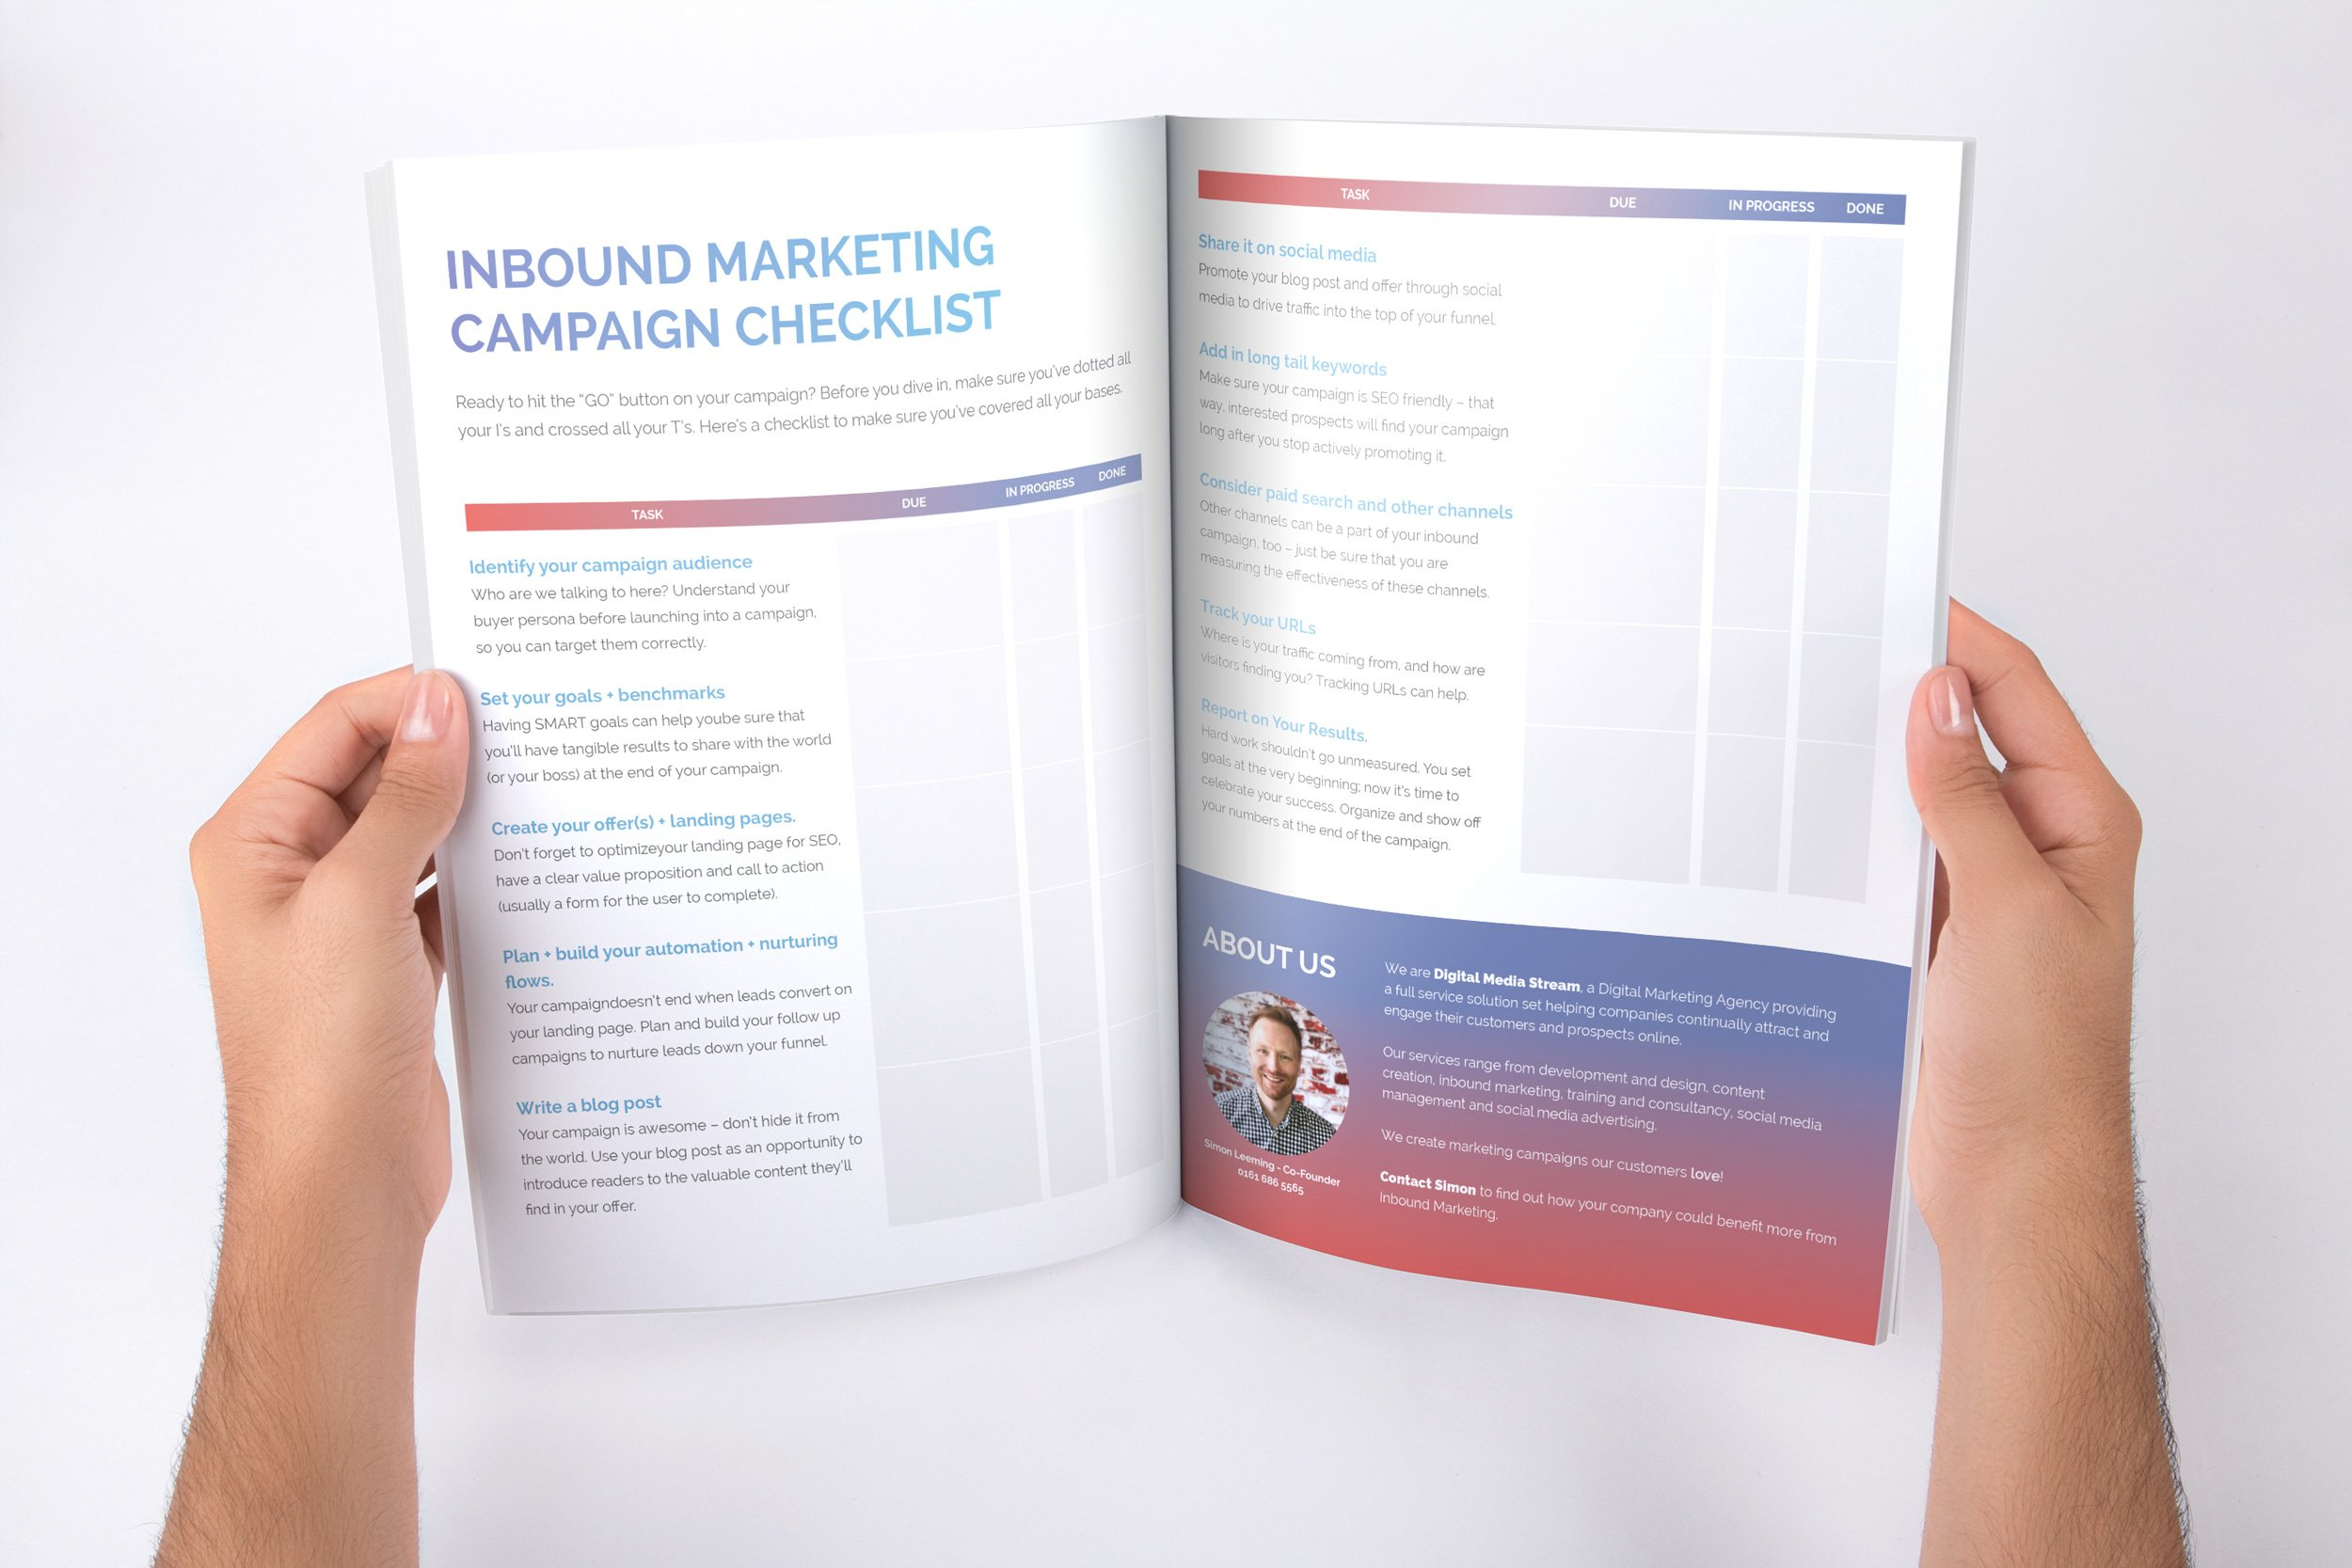 InboundMarketing-Checklist_2.jpg